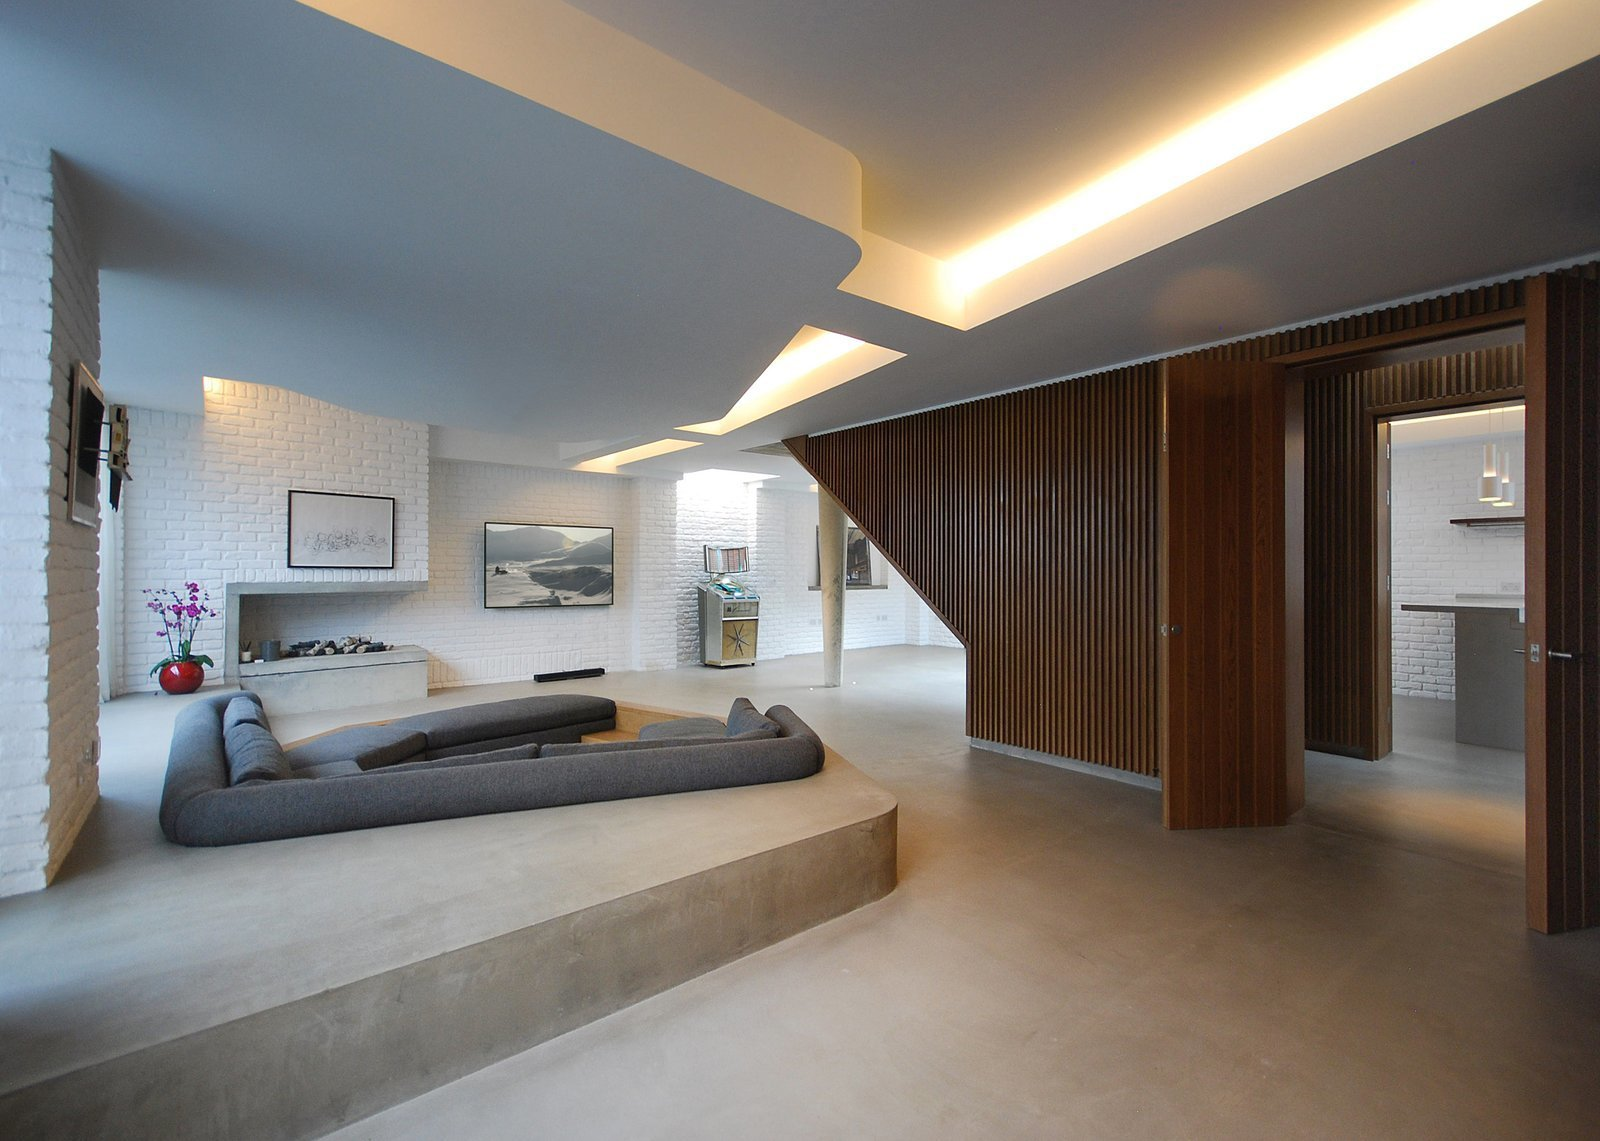 On a site surrounded by Victorian homes in Primrose Hill, Patalab Architecture transformed a former mechanic's garage into a three-bedroom house and two one-bedroom apartments.